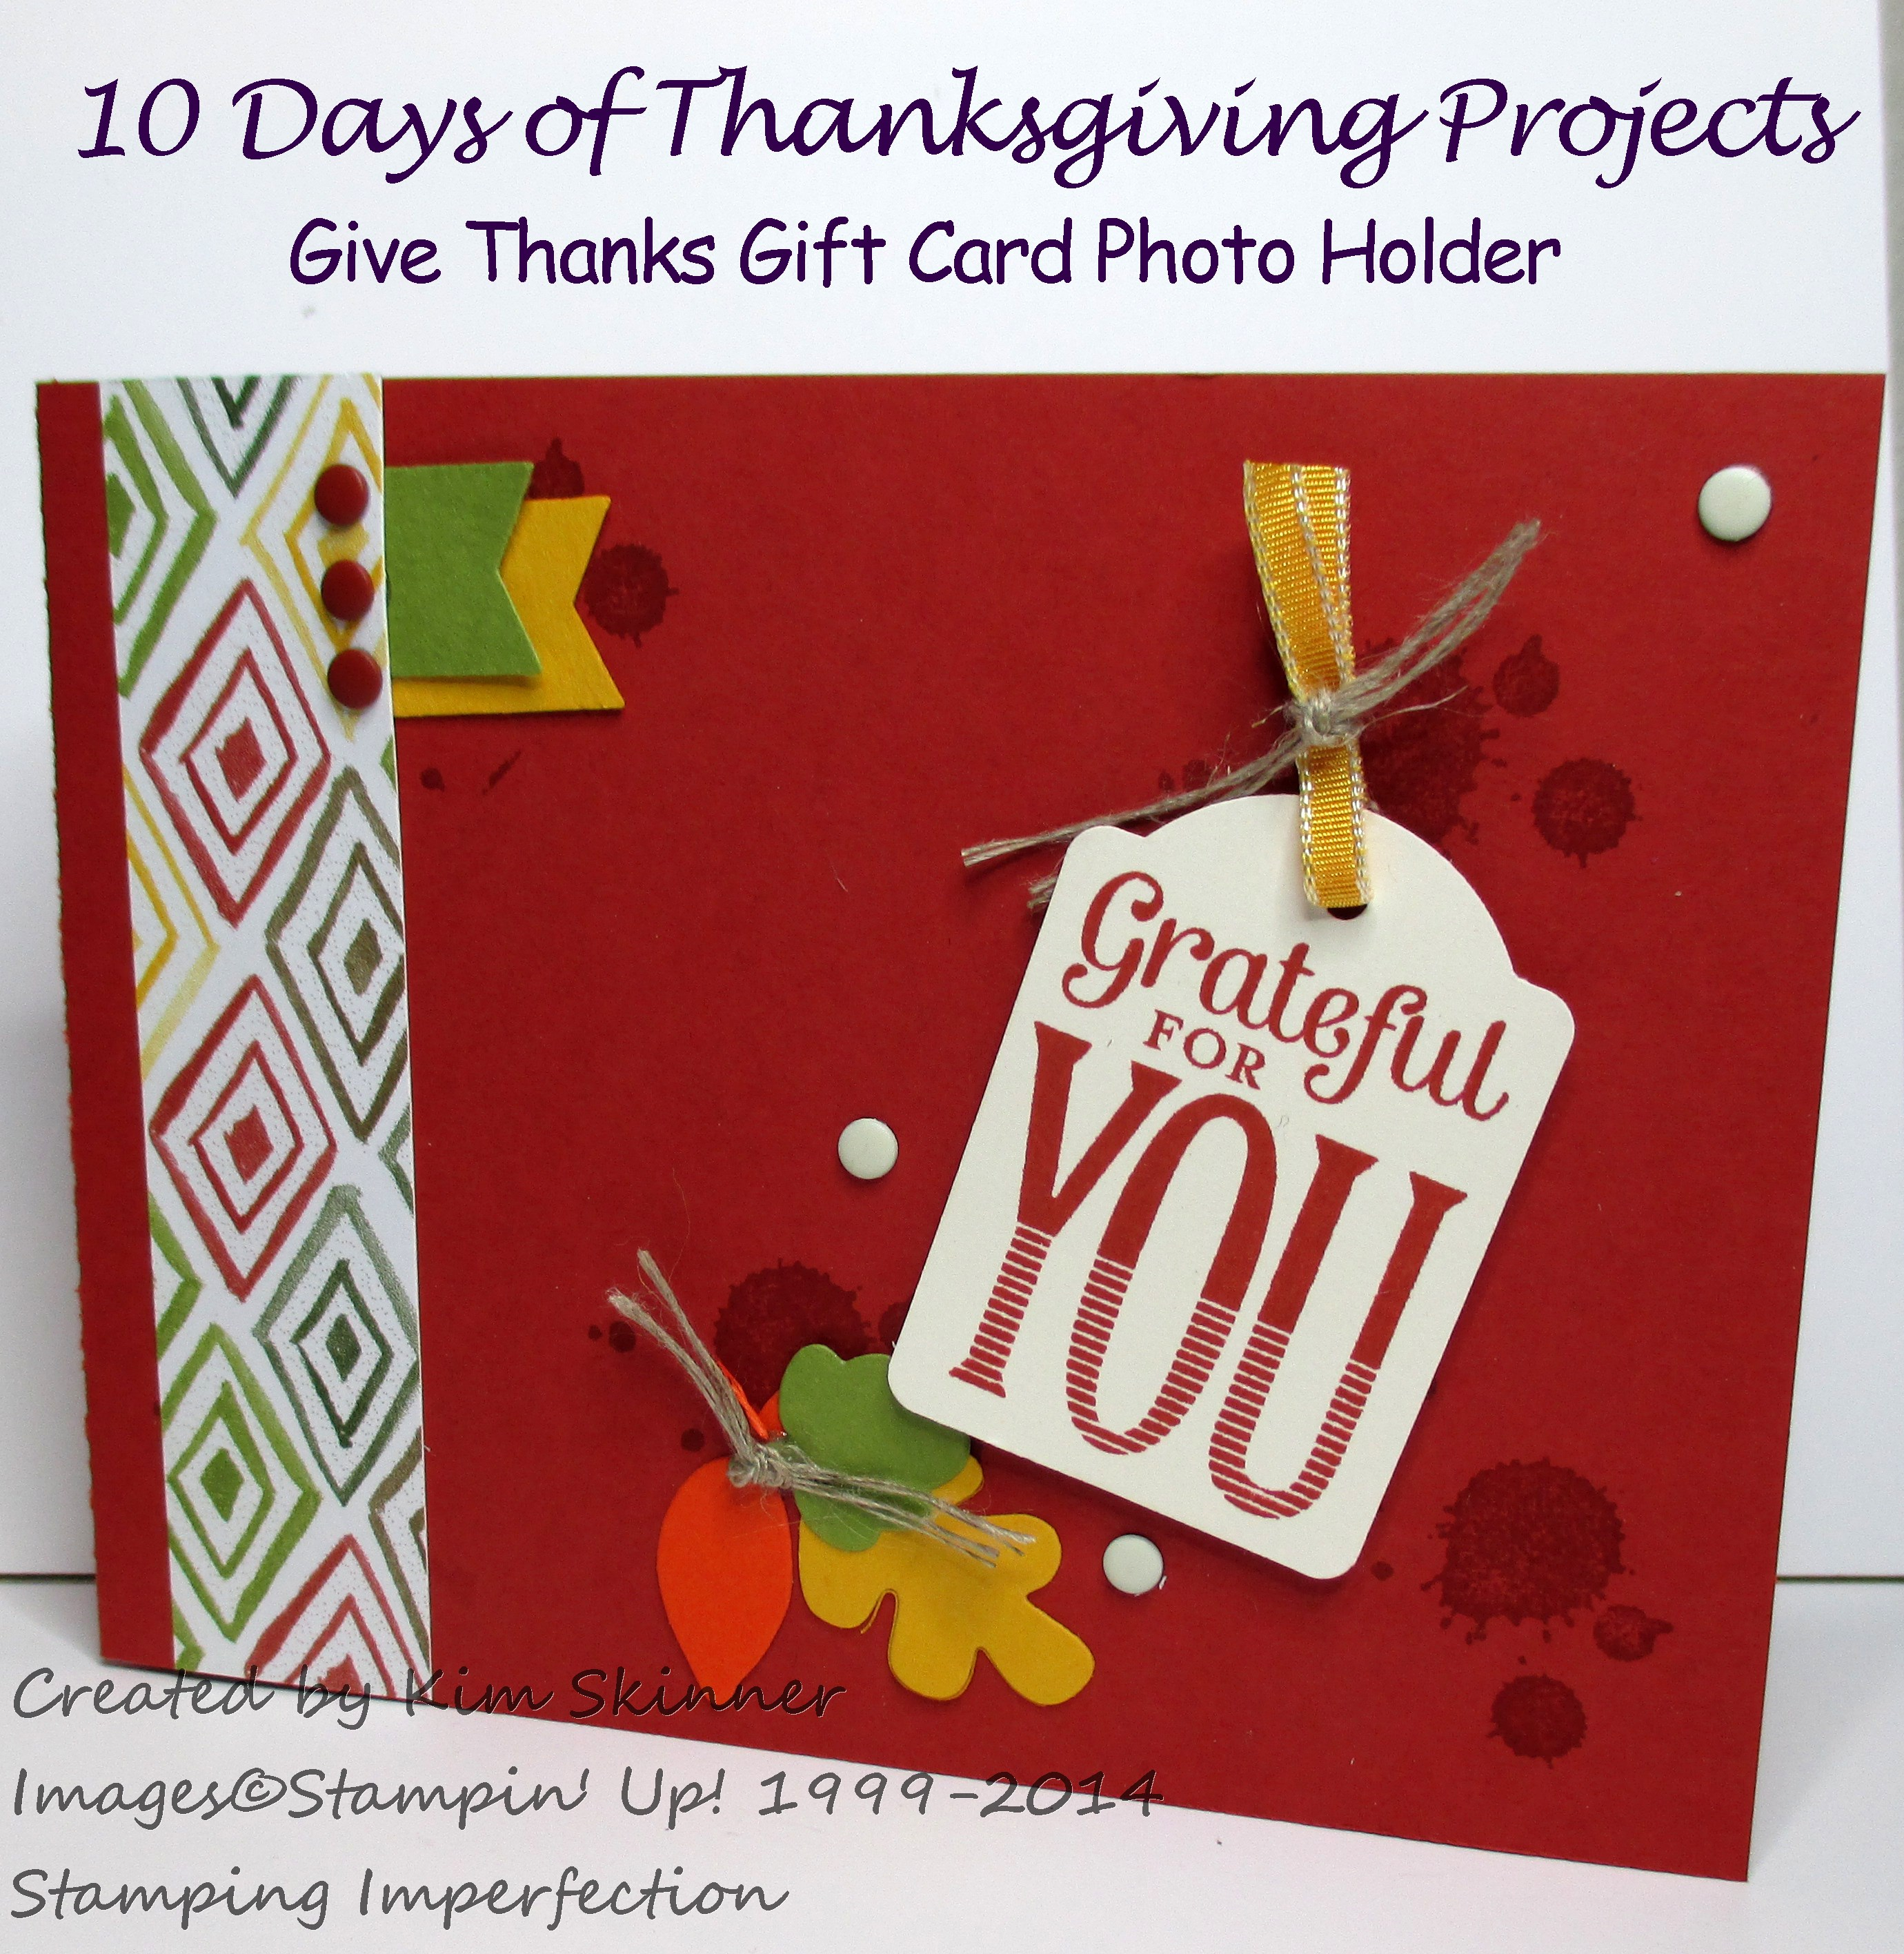 10 Days of Thanksgiving Projects Day 6 Give Thanks Photo Gift Card Holder